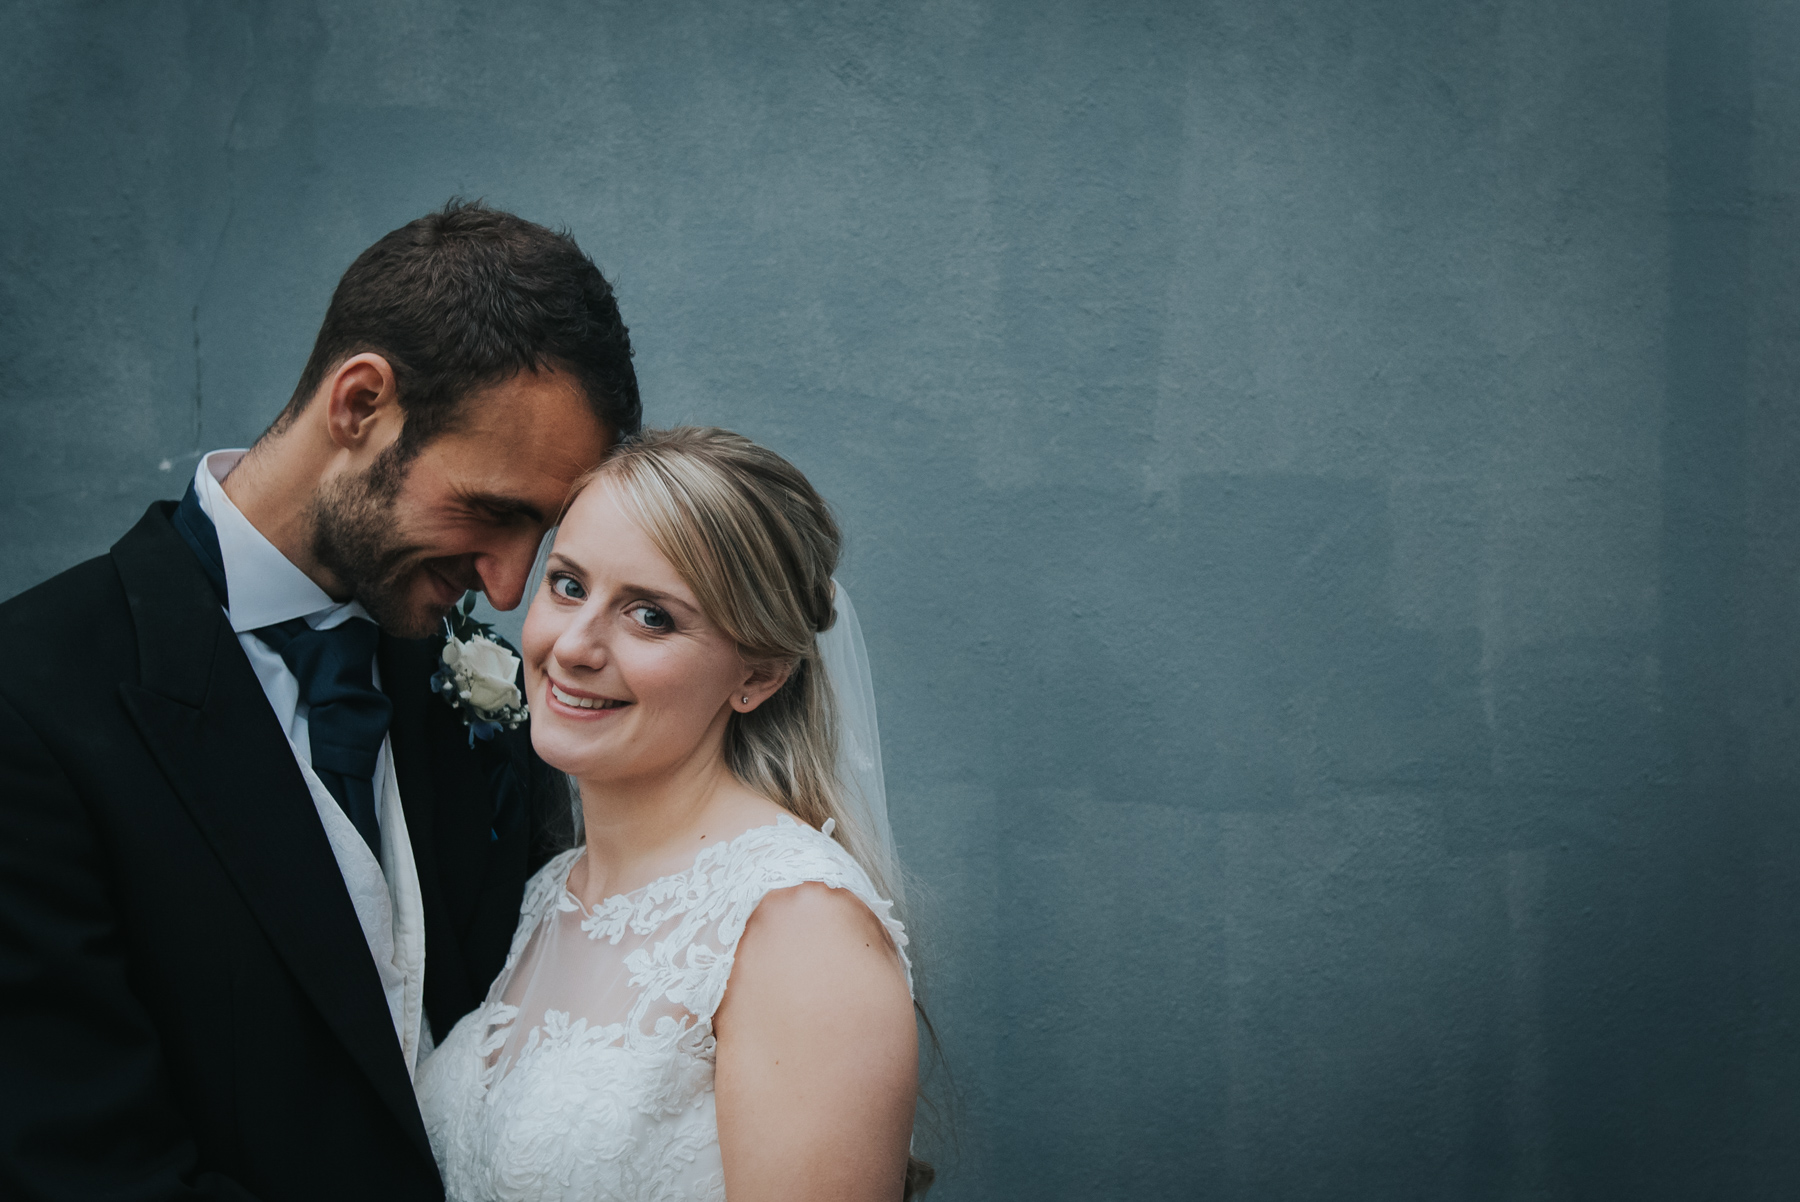 bride and groom against grey wall